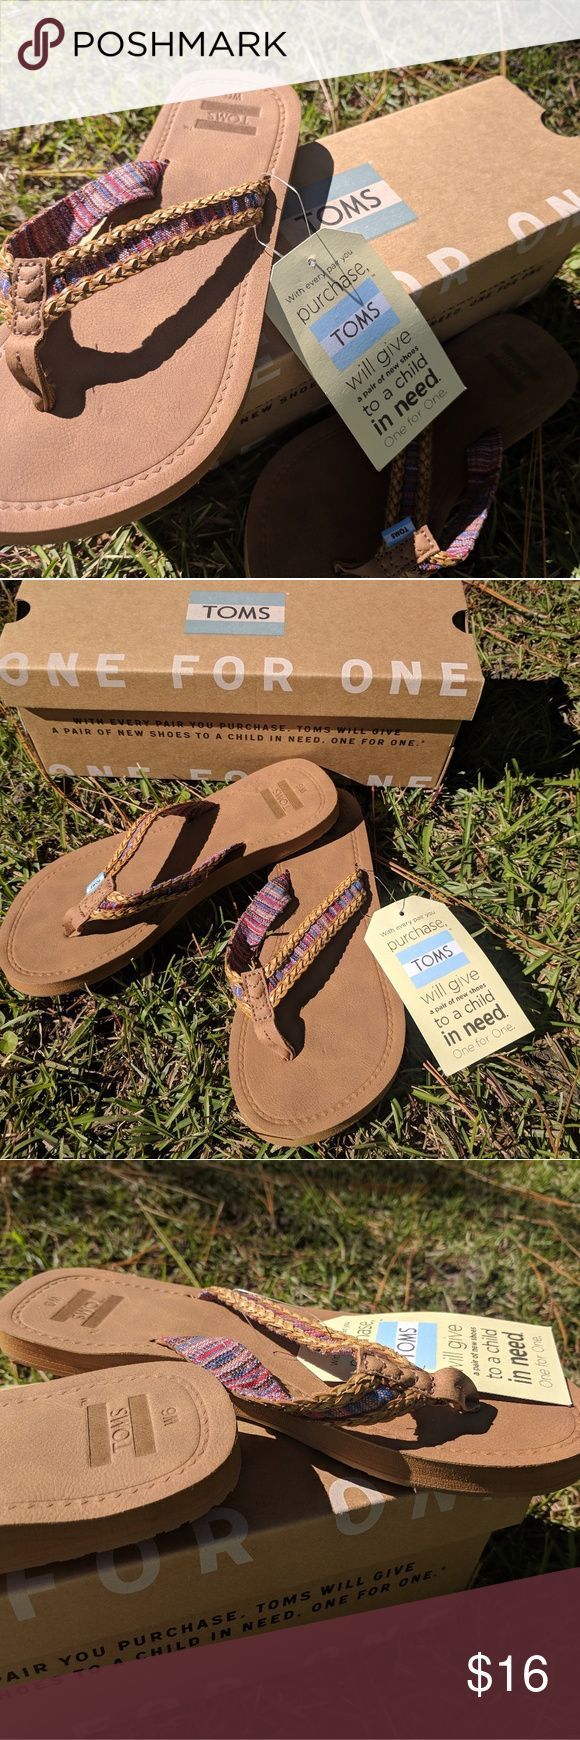 "Toms flip flop solana NWT Brand NEW with TAGS Toms Solana Flip Flop Sand Pink Mix Textile  Featuring braided straps and a cushioned footbed, we like to think of the Solana as the perfect ""by-the-front-door"" sandal.  Sand upper  Tribal textile straps with braided trim  Cushioned footbed with arch support  TOMS flag at toe post Toms Shoes"